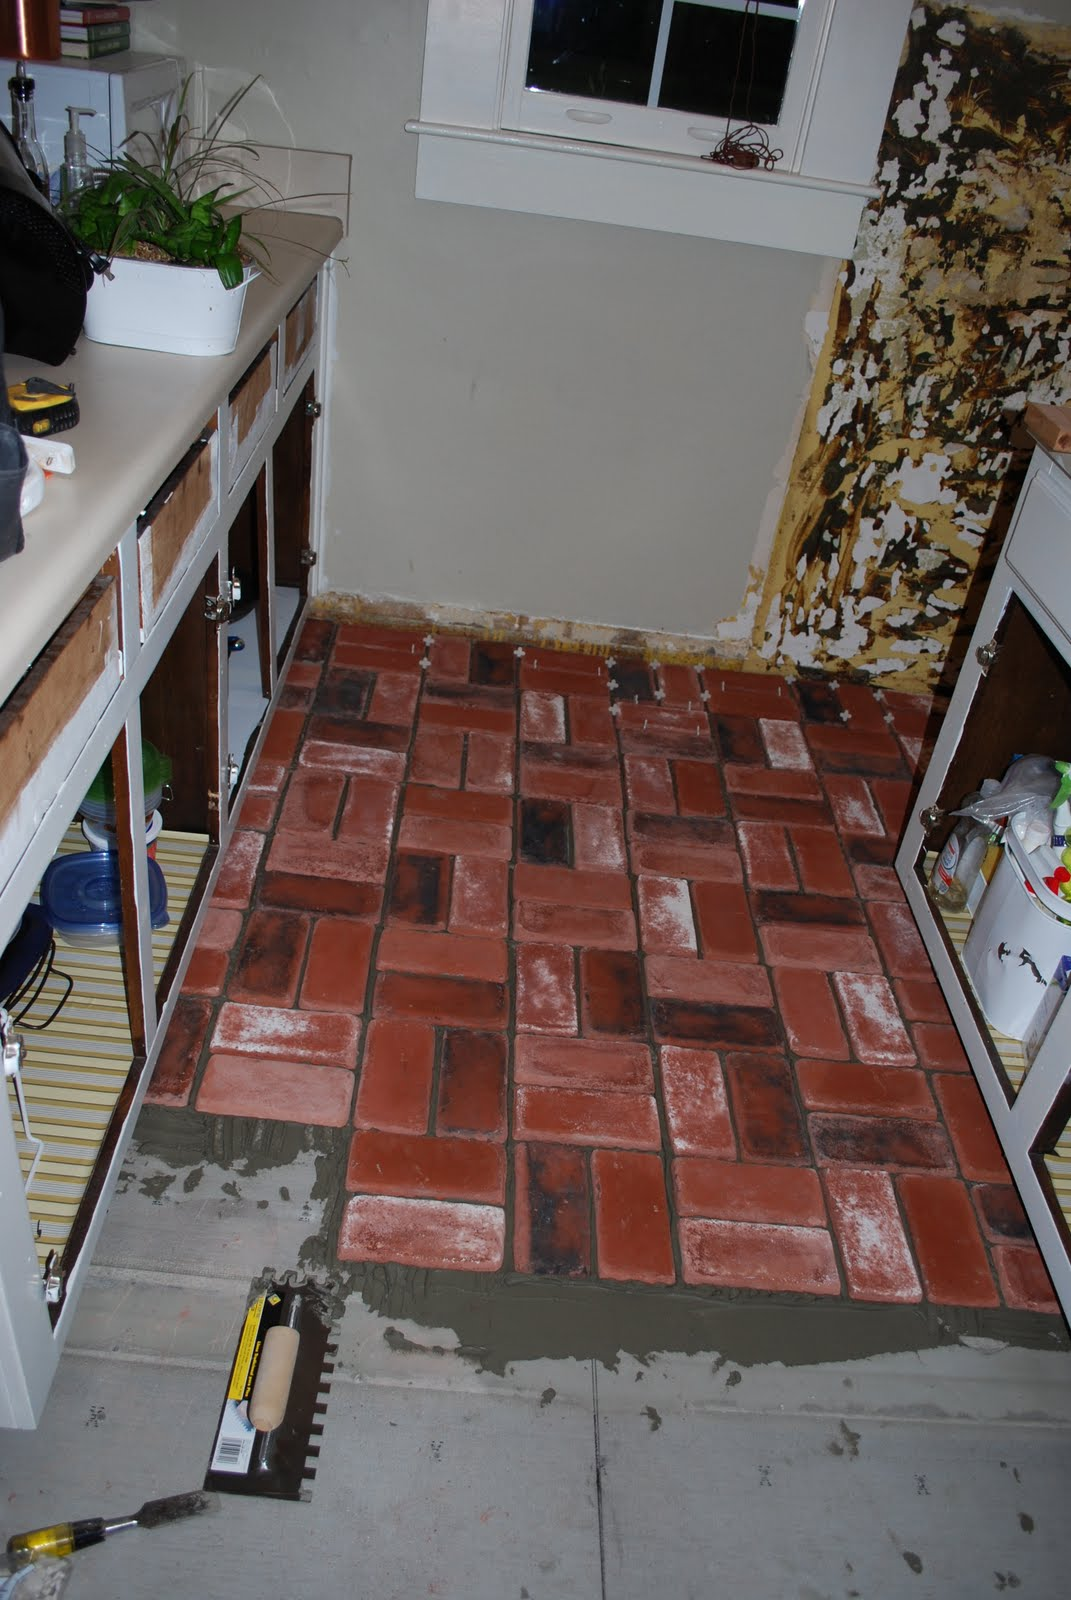 Red brick flooring kitchen - Laying The Bricks Was The Easy Part Eric Was The Cutter And I Would Lay Them It Took About 3 Hours We Used A Grey Thinset So If Any Got On The